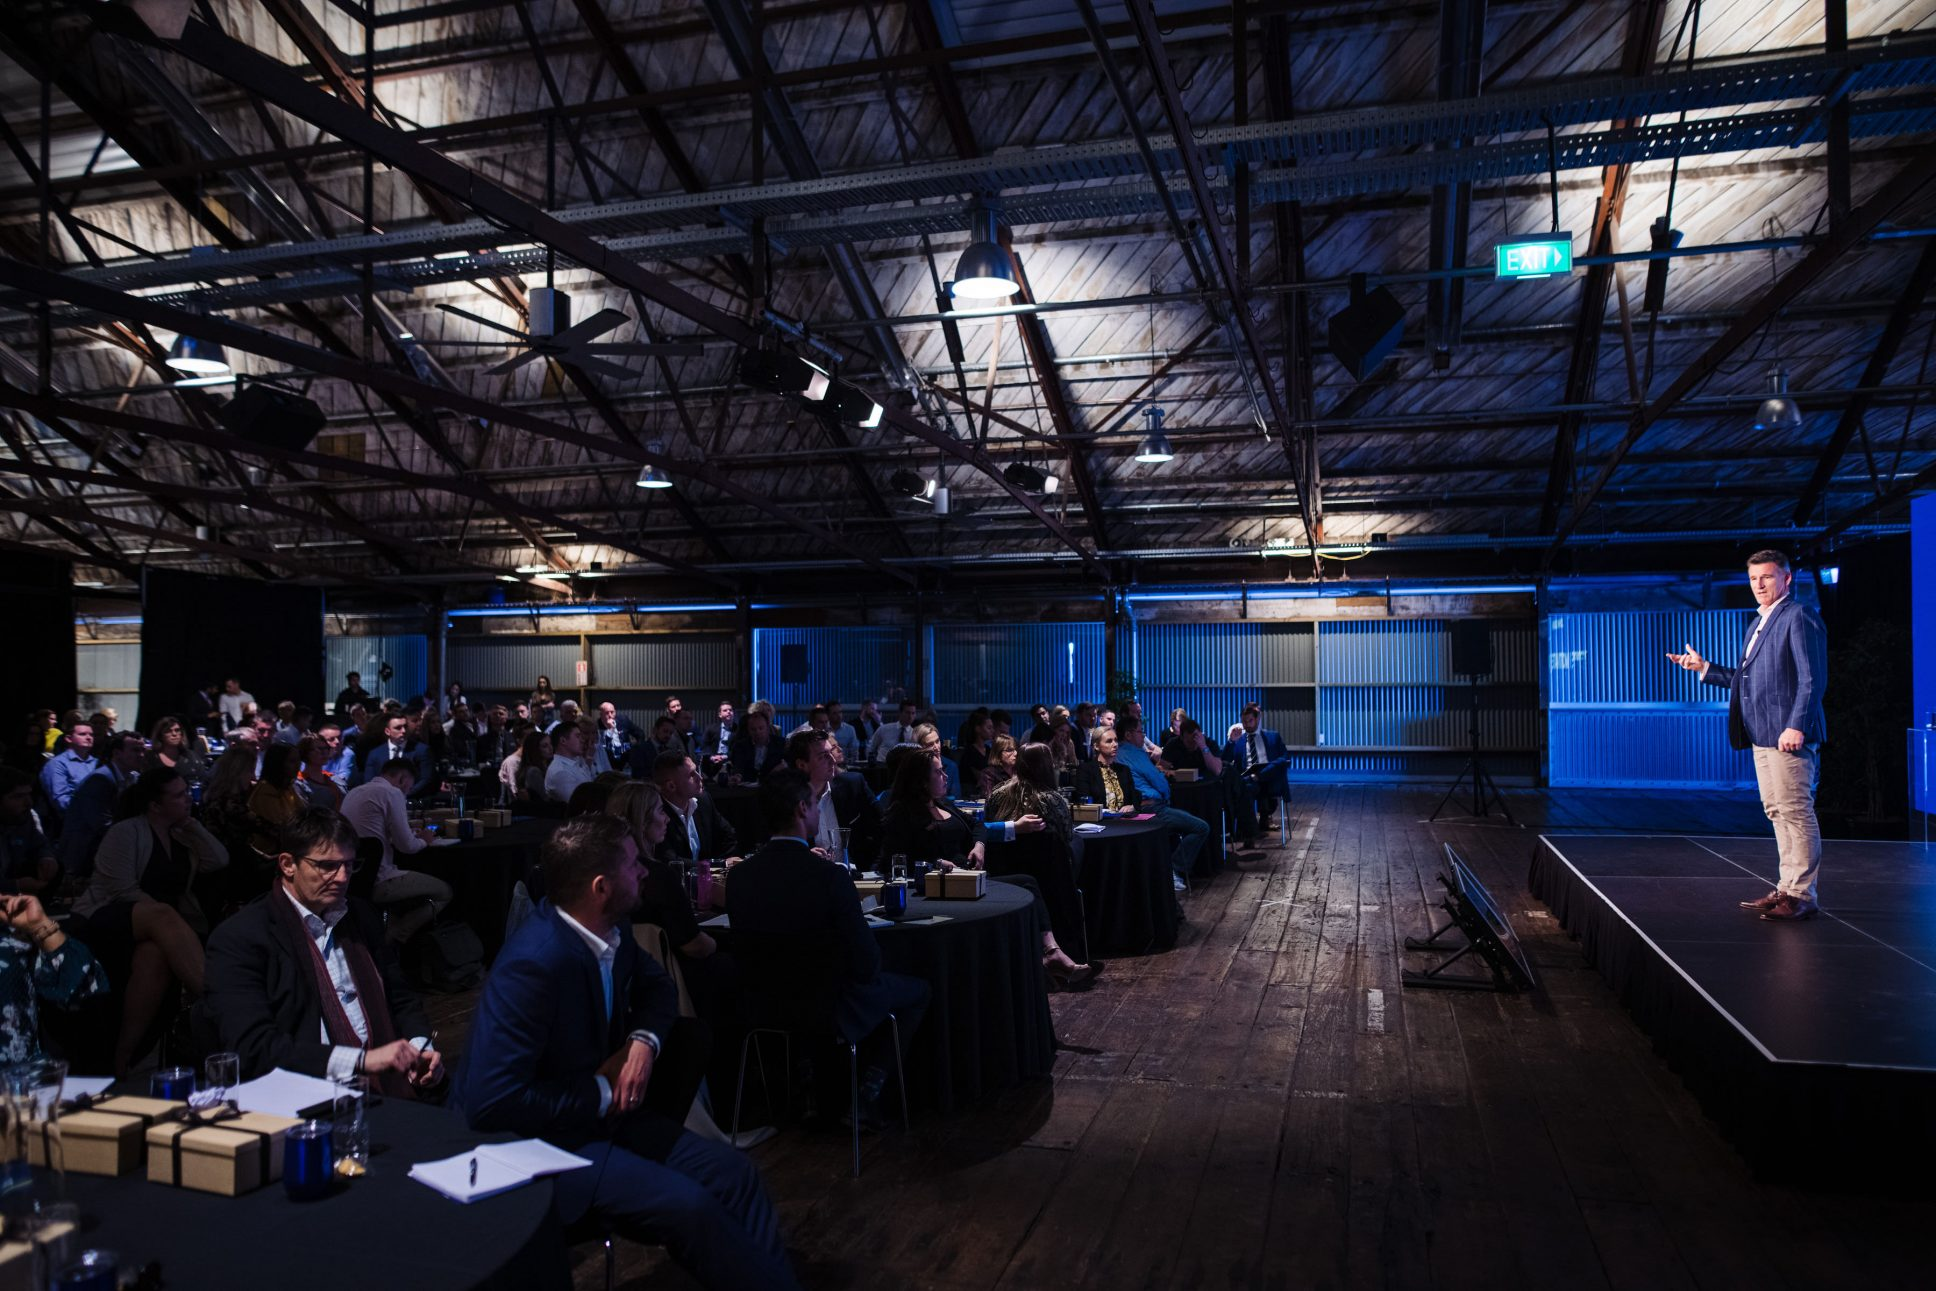 Conference held at Auckland's Shed 10.